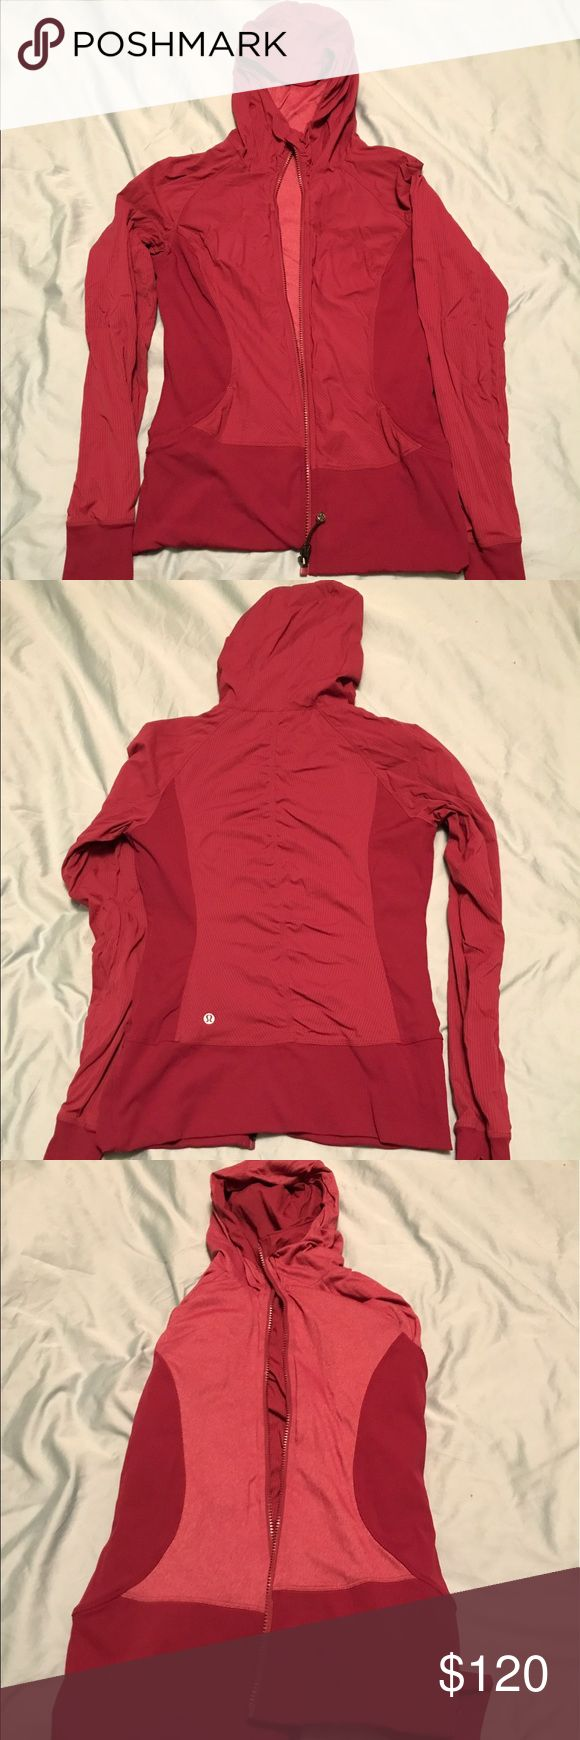 Lululemon In Flux Jacket Great comfortable burgundy athletic jacket from lululemon. Good and water repelling, reversible, super soft on the inside. In excellent condition! Size 8 lululemon athletica Jackets & Coats